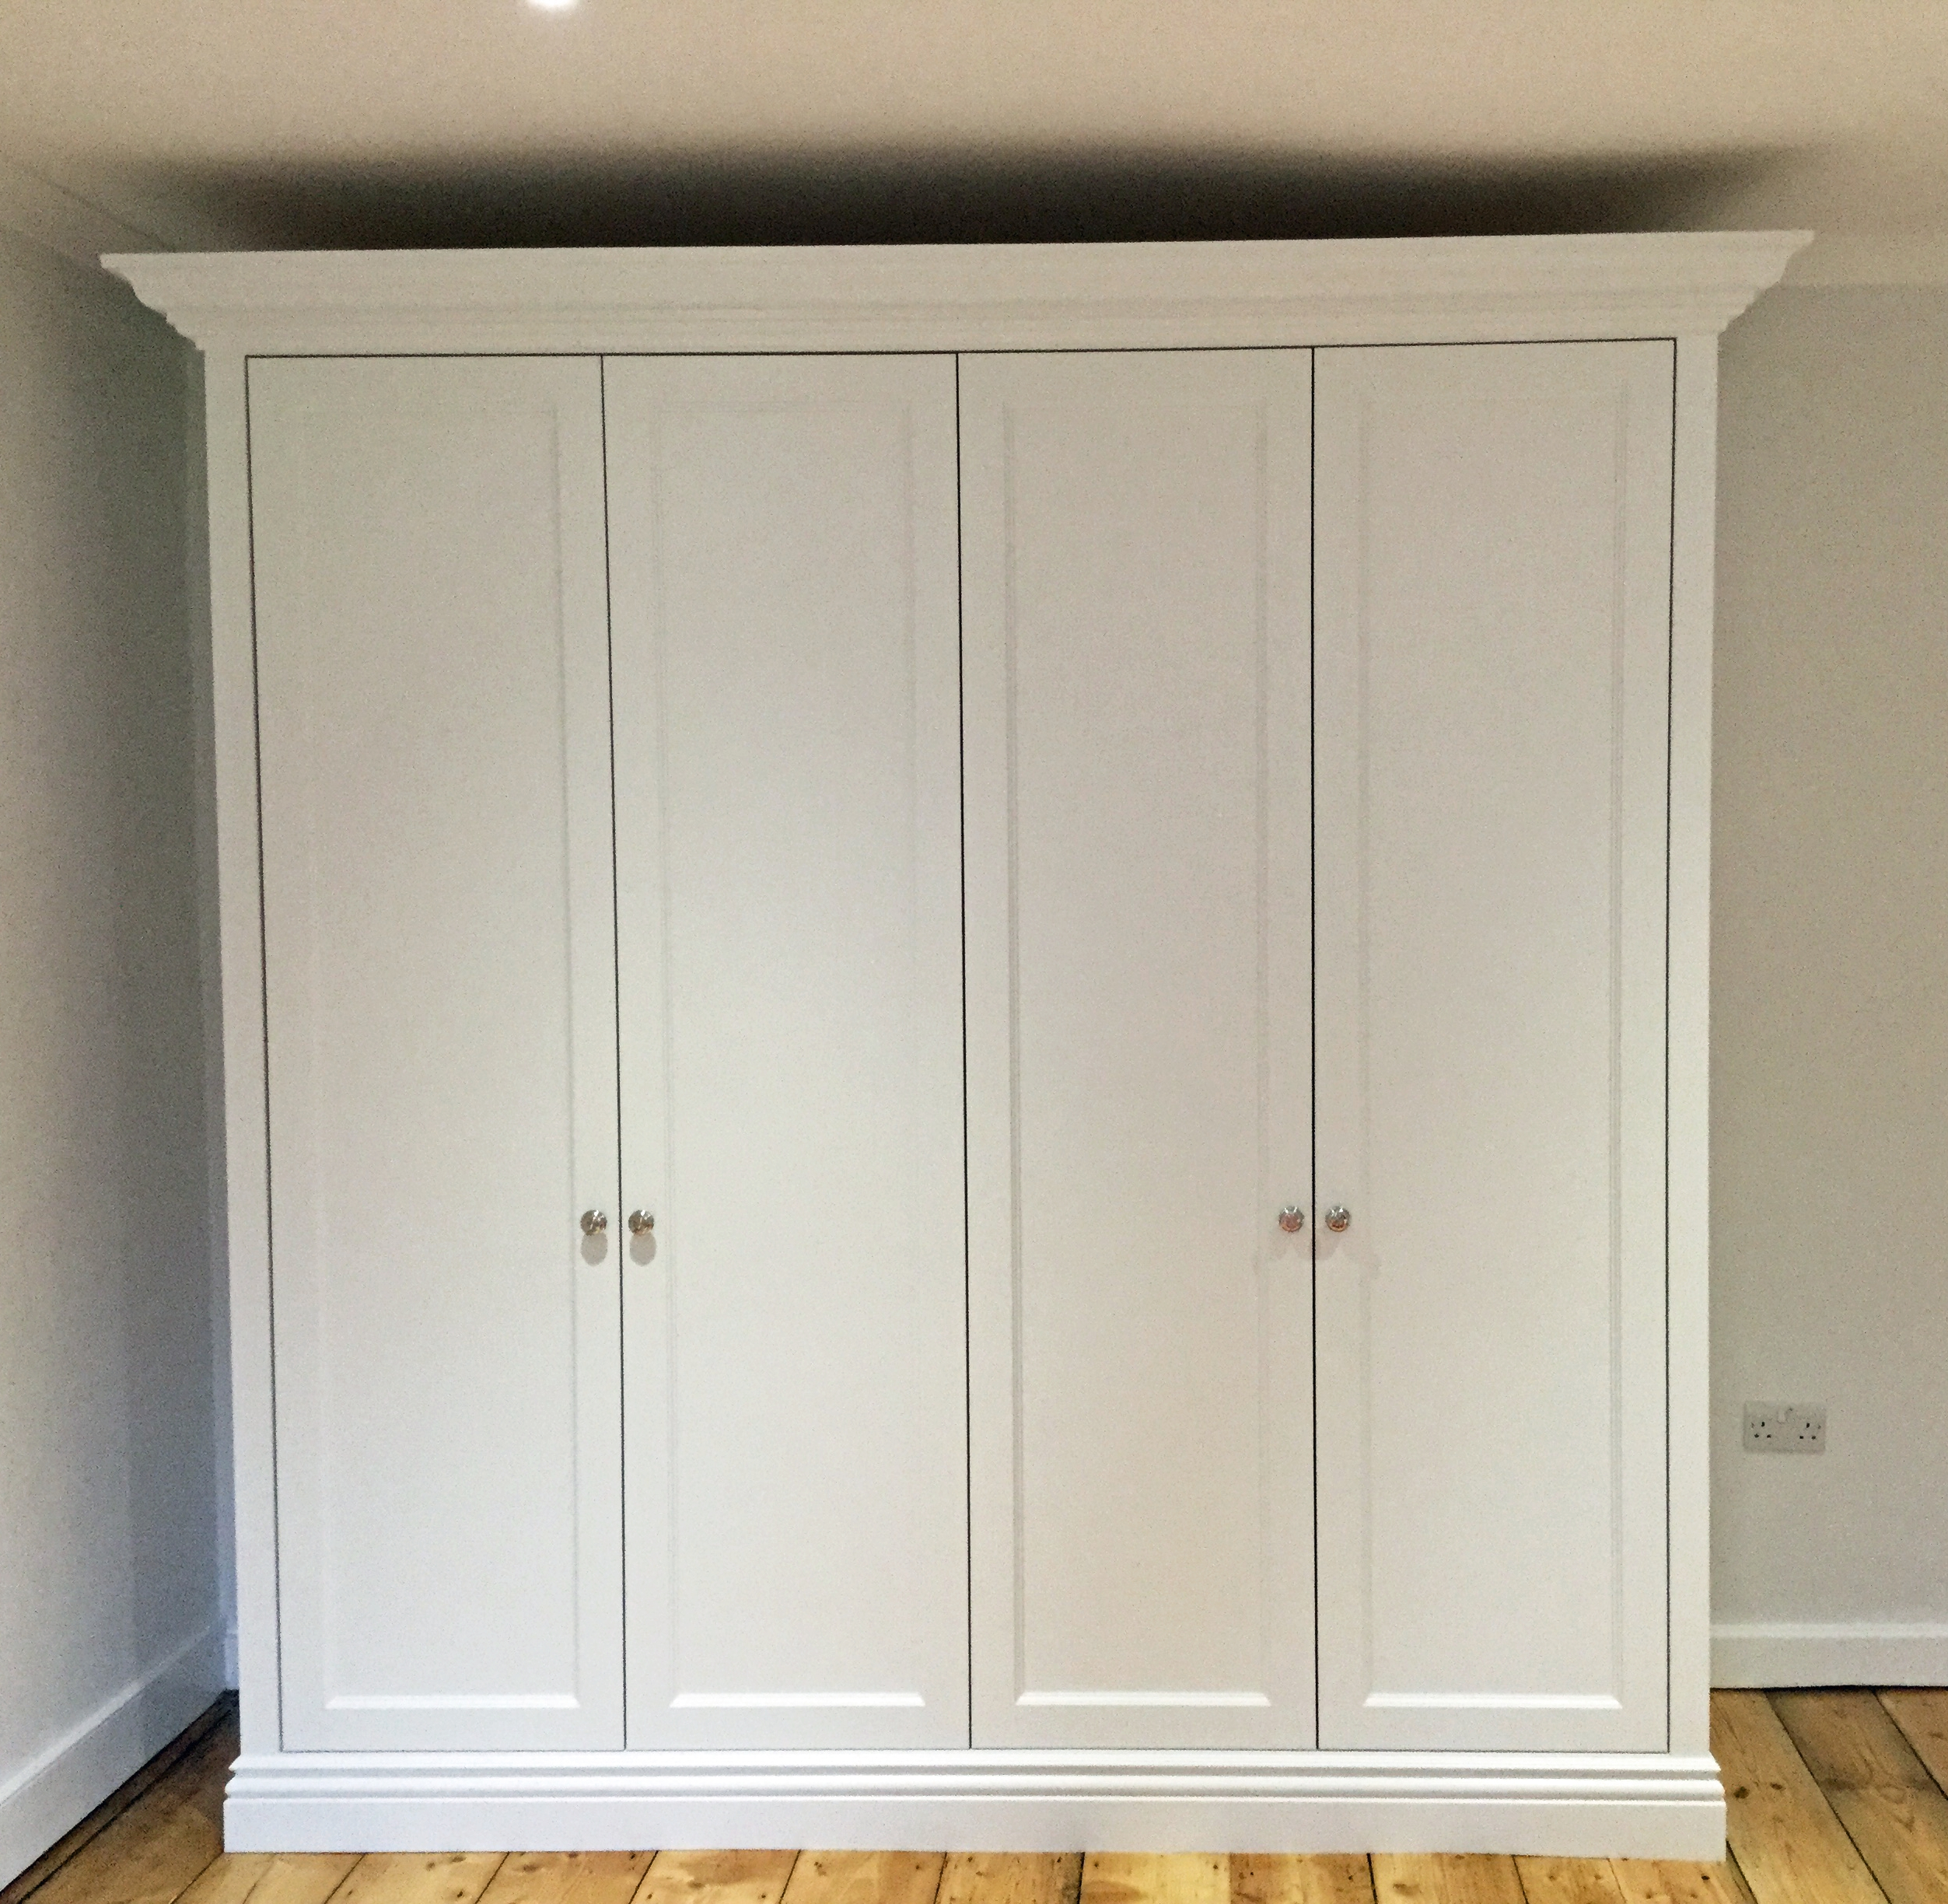 Fitted Wardrobes Bedfordshire - The Heritage Wardrobe Company with Painted Wardrobes (Image 4 of 15)